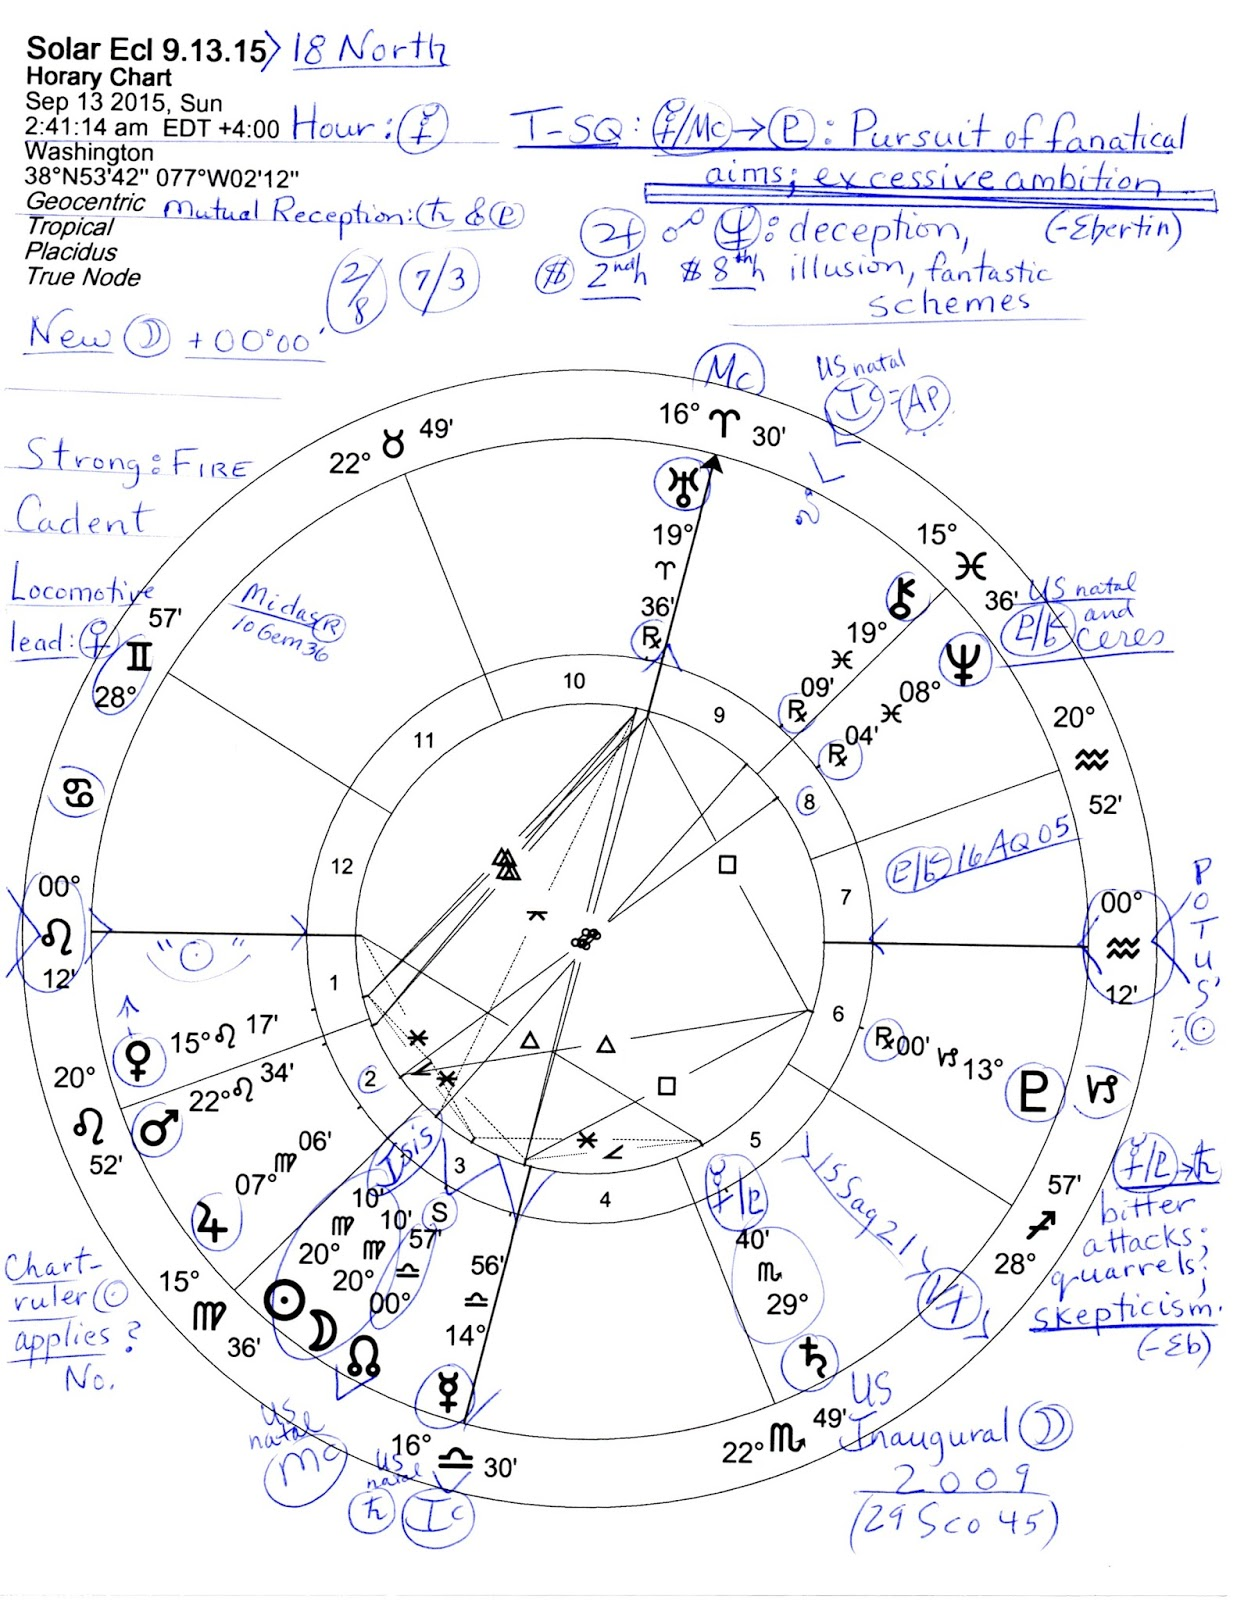 Stars over washington dc horoscope sept 27 2015 lunar eclipse 2015 solar eclipse horoscope in the 18 north saros series 20virgo10 which falls disturbingly near starry denebola to go against society and us natal nvjuhfo Images